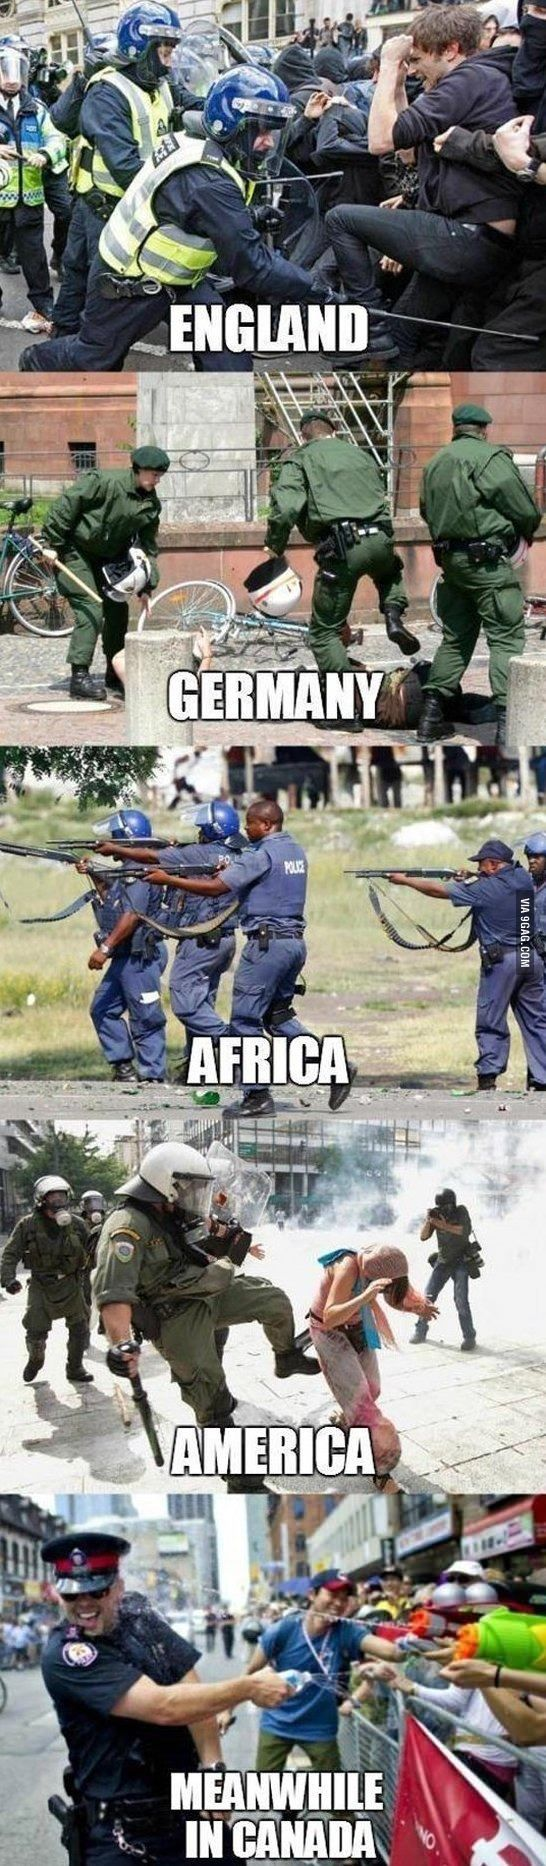 Police brutality across the world